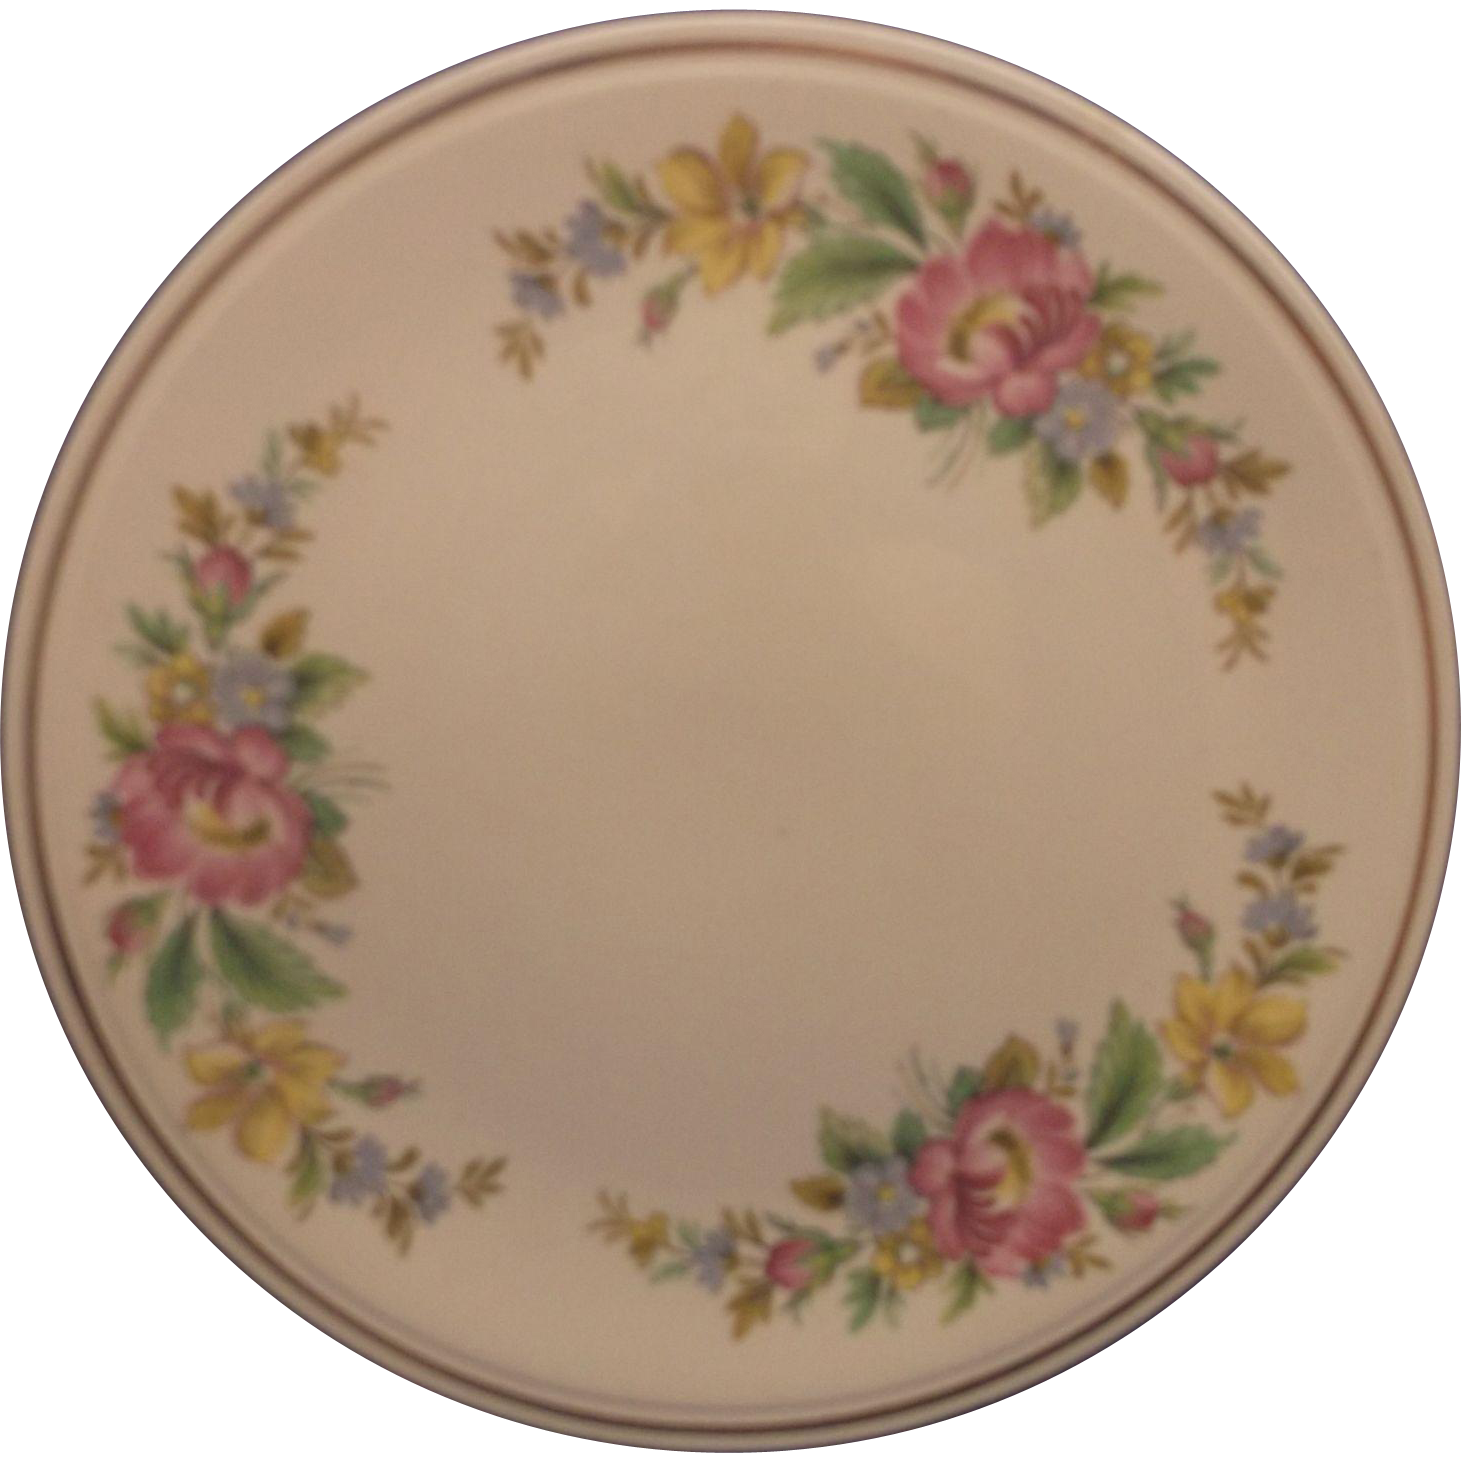 Spring Wreath Bright Floral Cake Plate Kitchen Kraft  Homer Laughlin